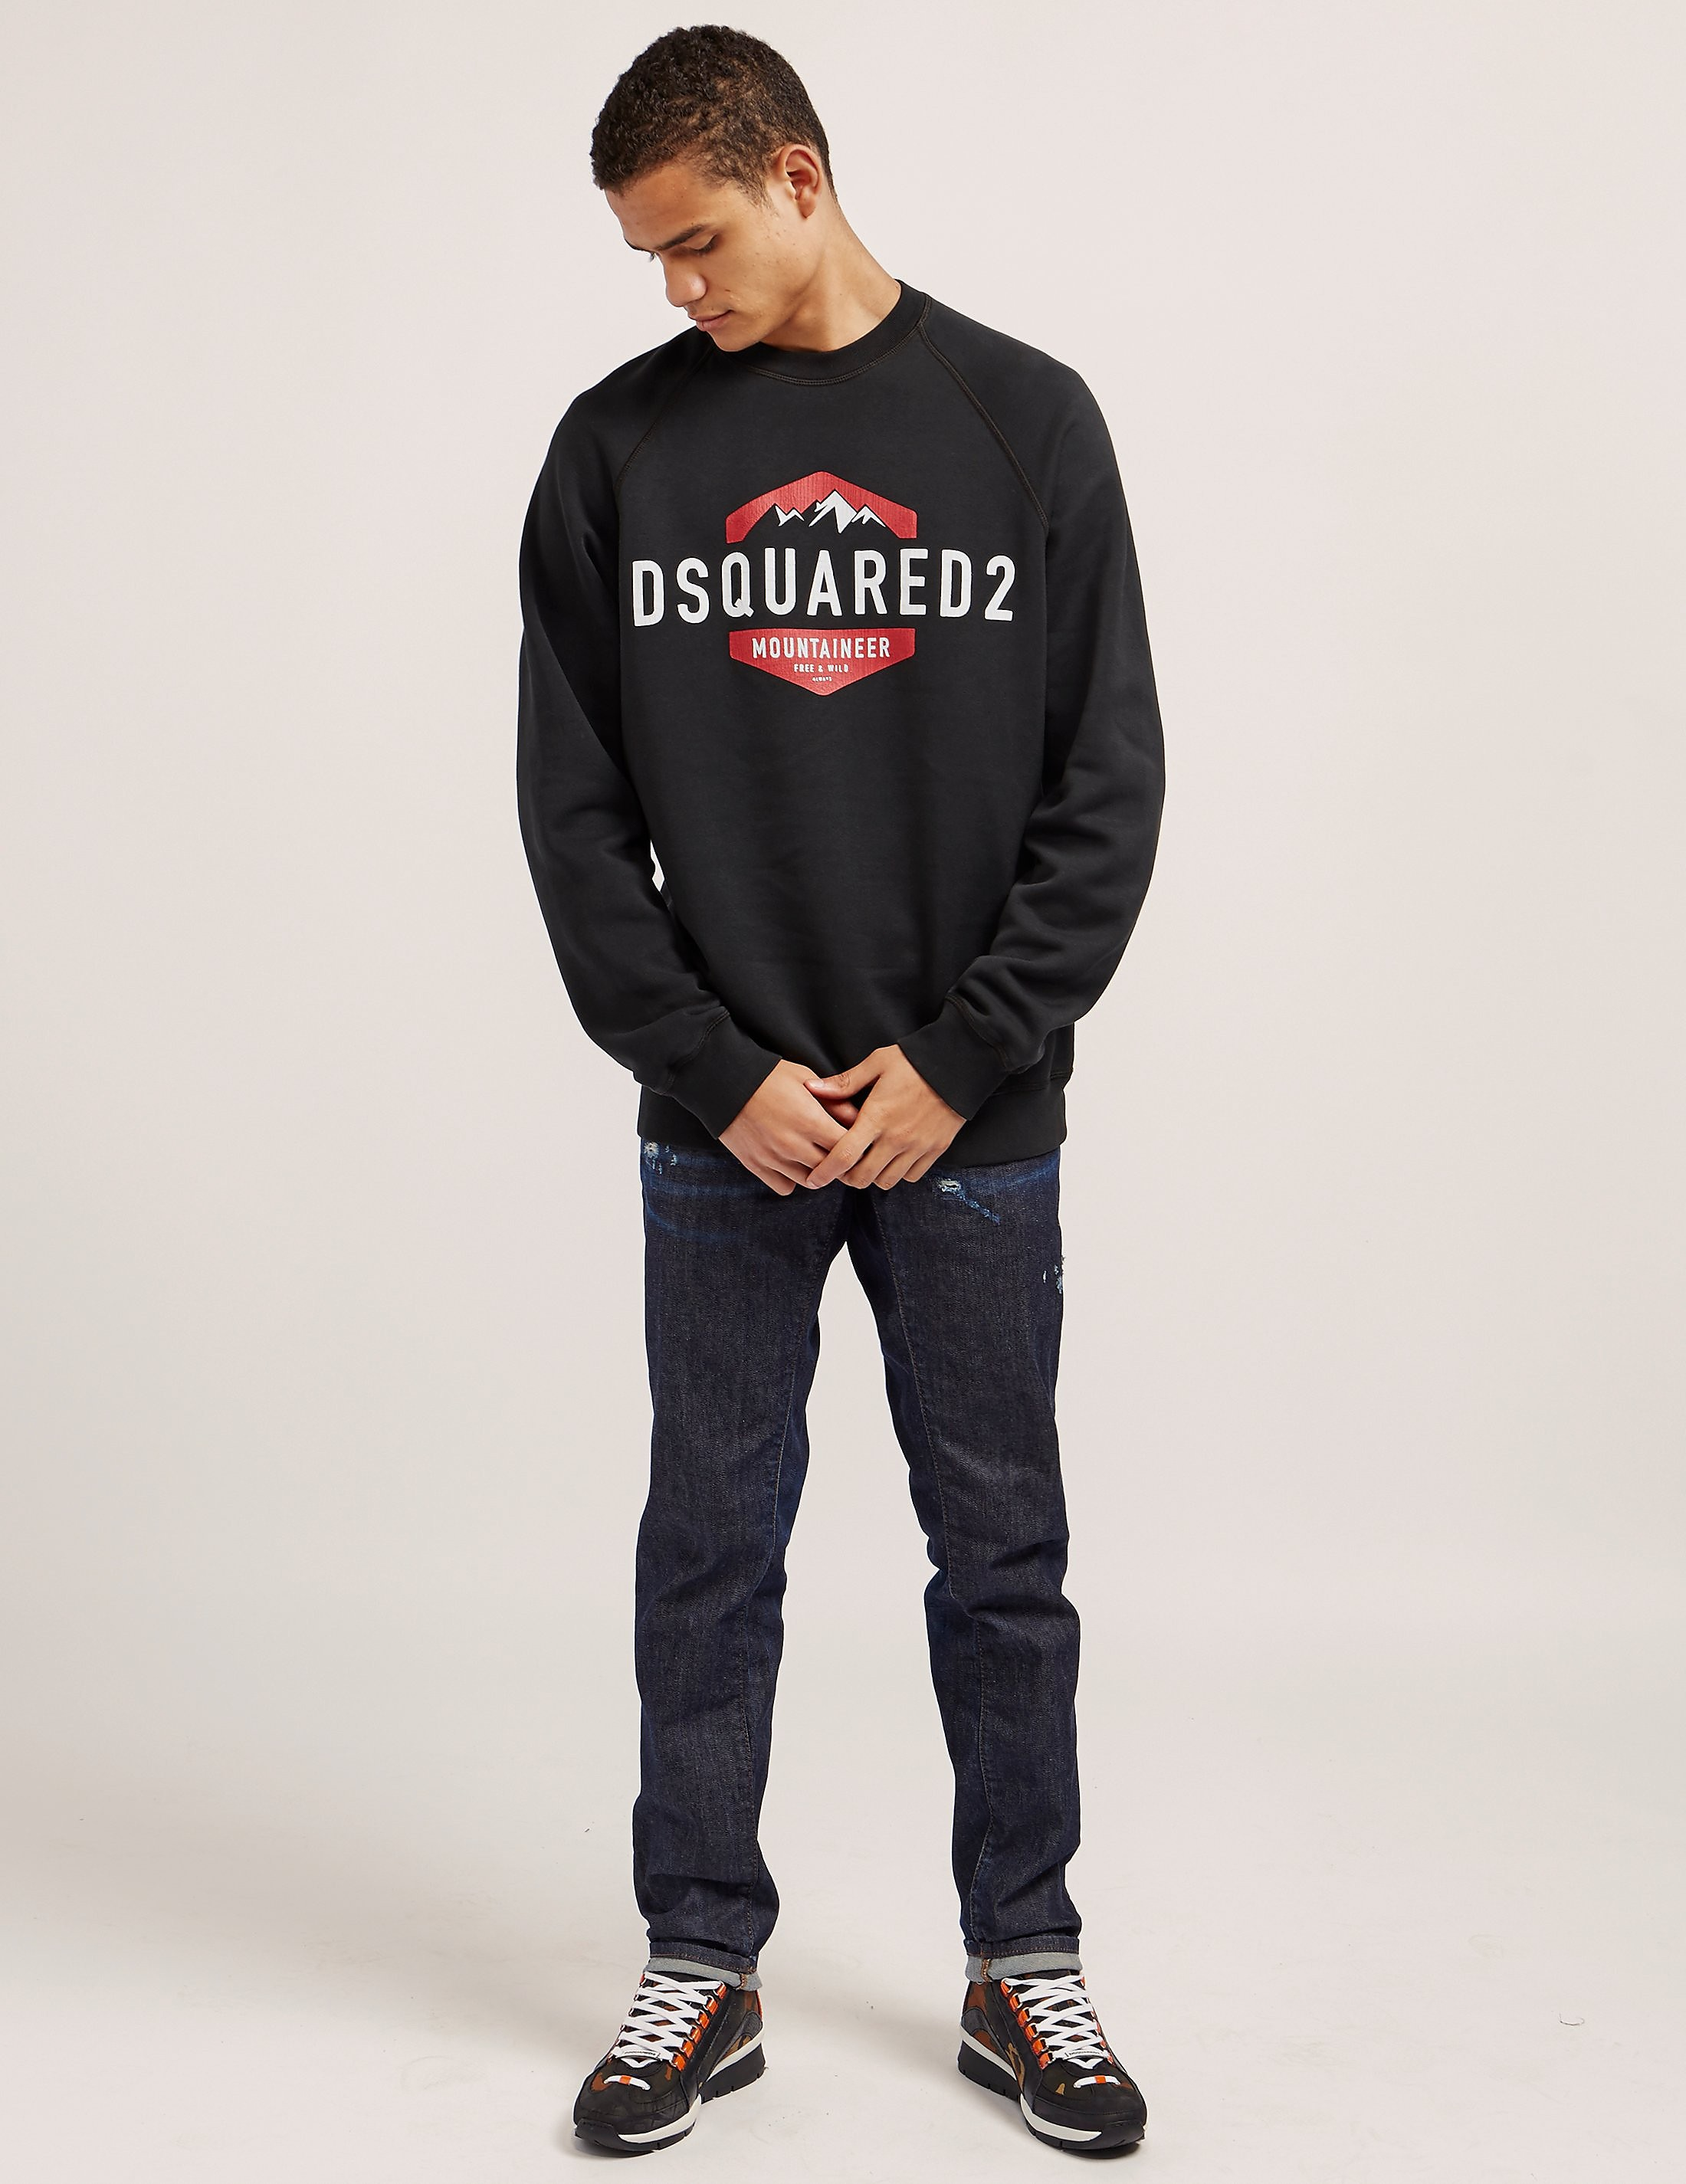 DSQUARED2 Mountaineer Sweatshirt